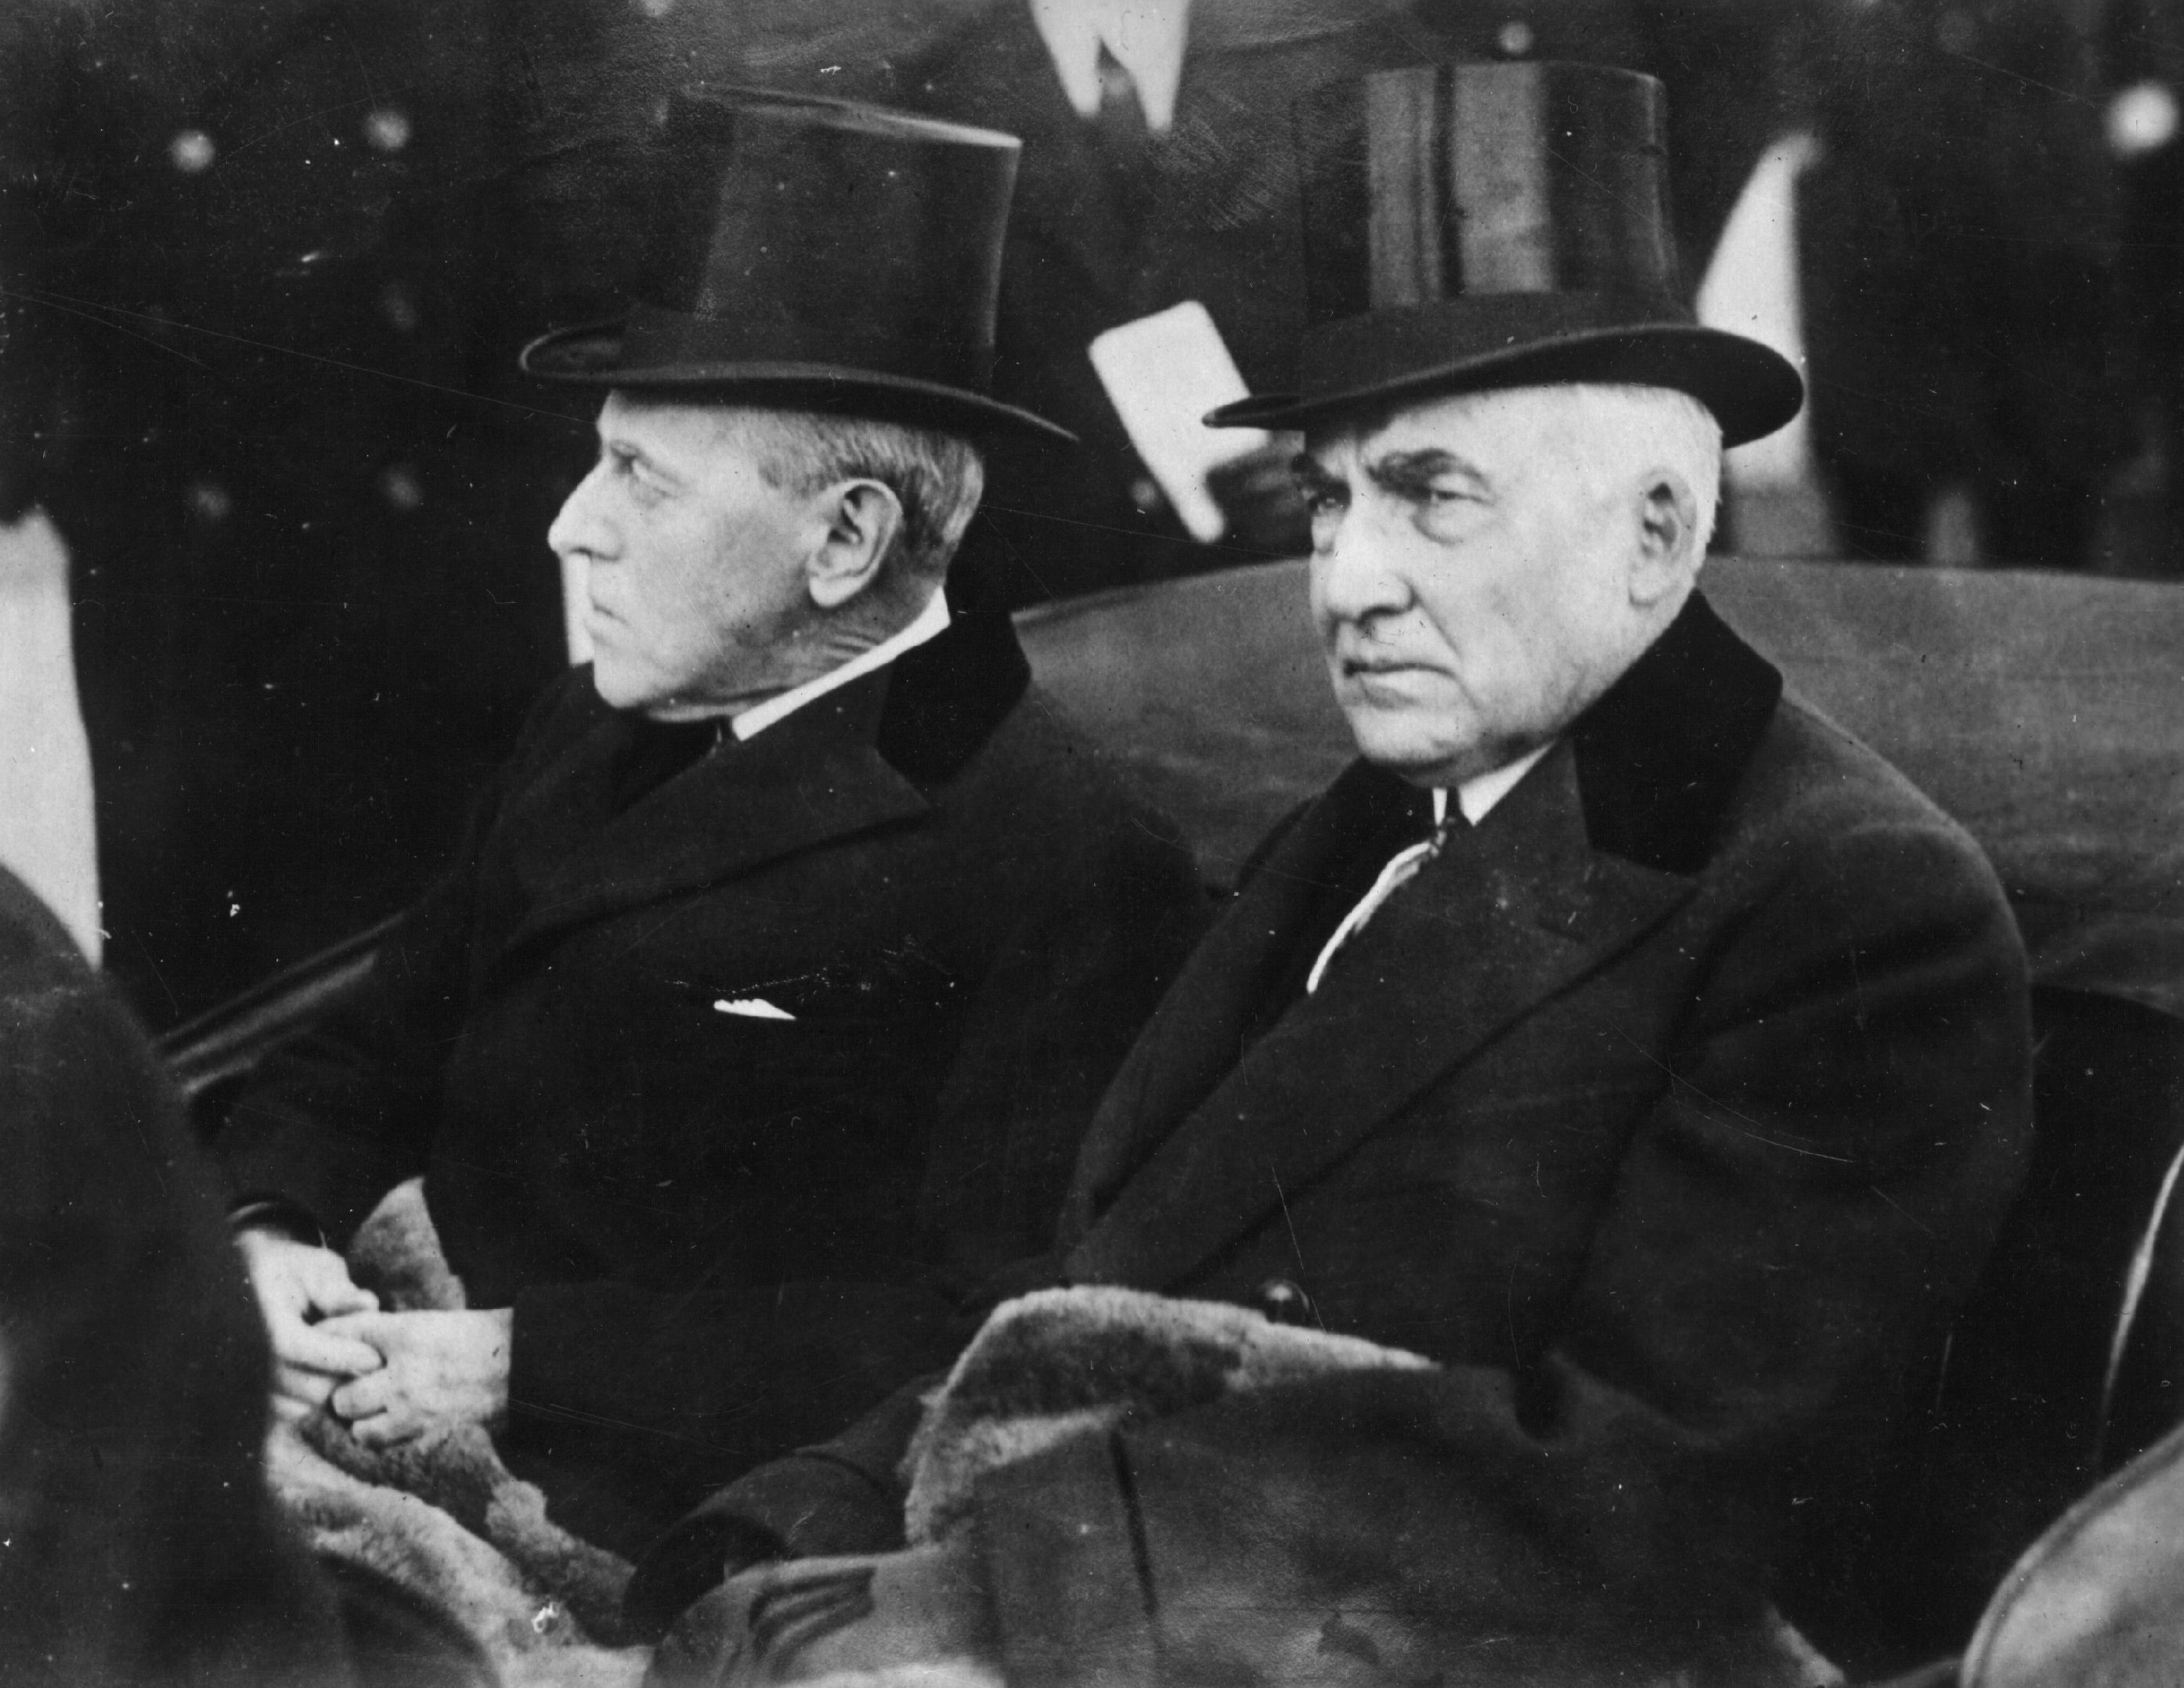 Warren Gamaliel Harding (1865 - 1923), the 29th President of the United States of America, riding in a carriage with the former President Woodrow Wilson